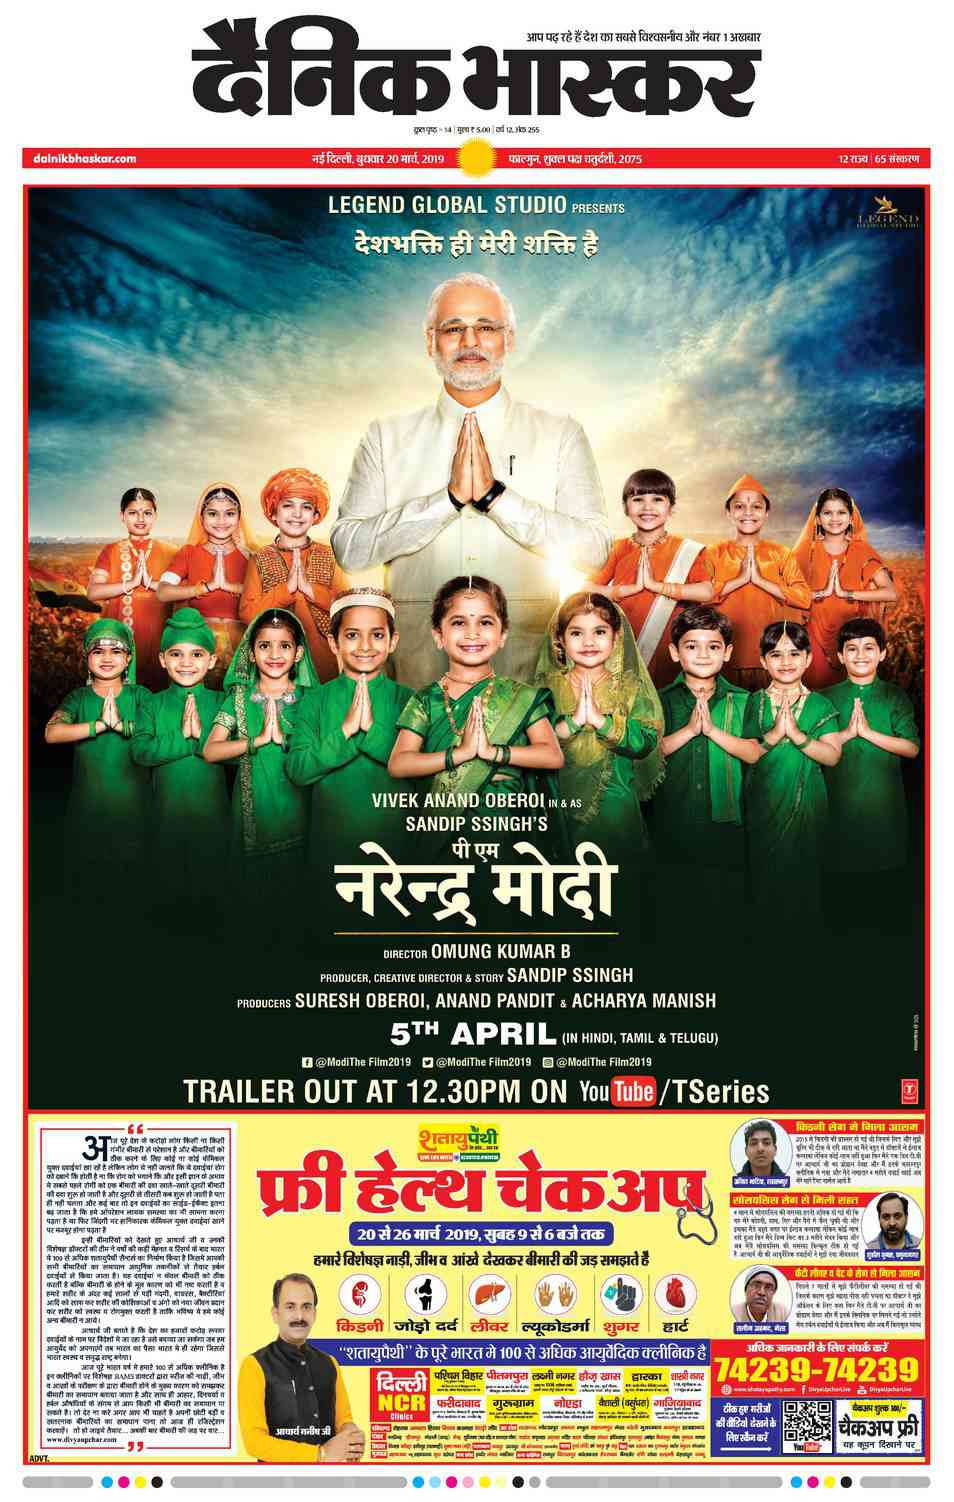 The front-page advertisement of 'PM Narendra Modi' film on March 20 in Dainik Bhaskar.